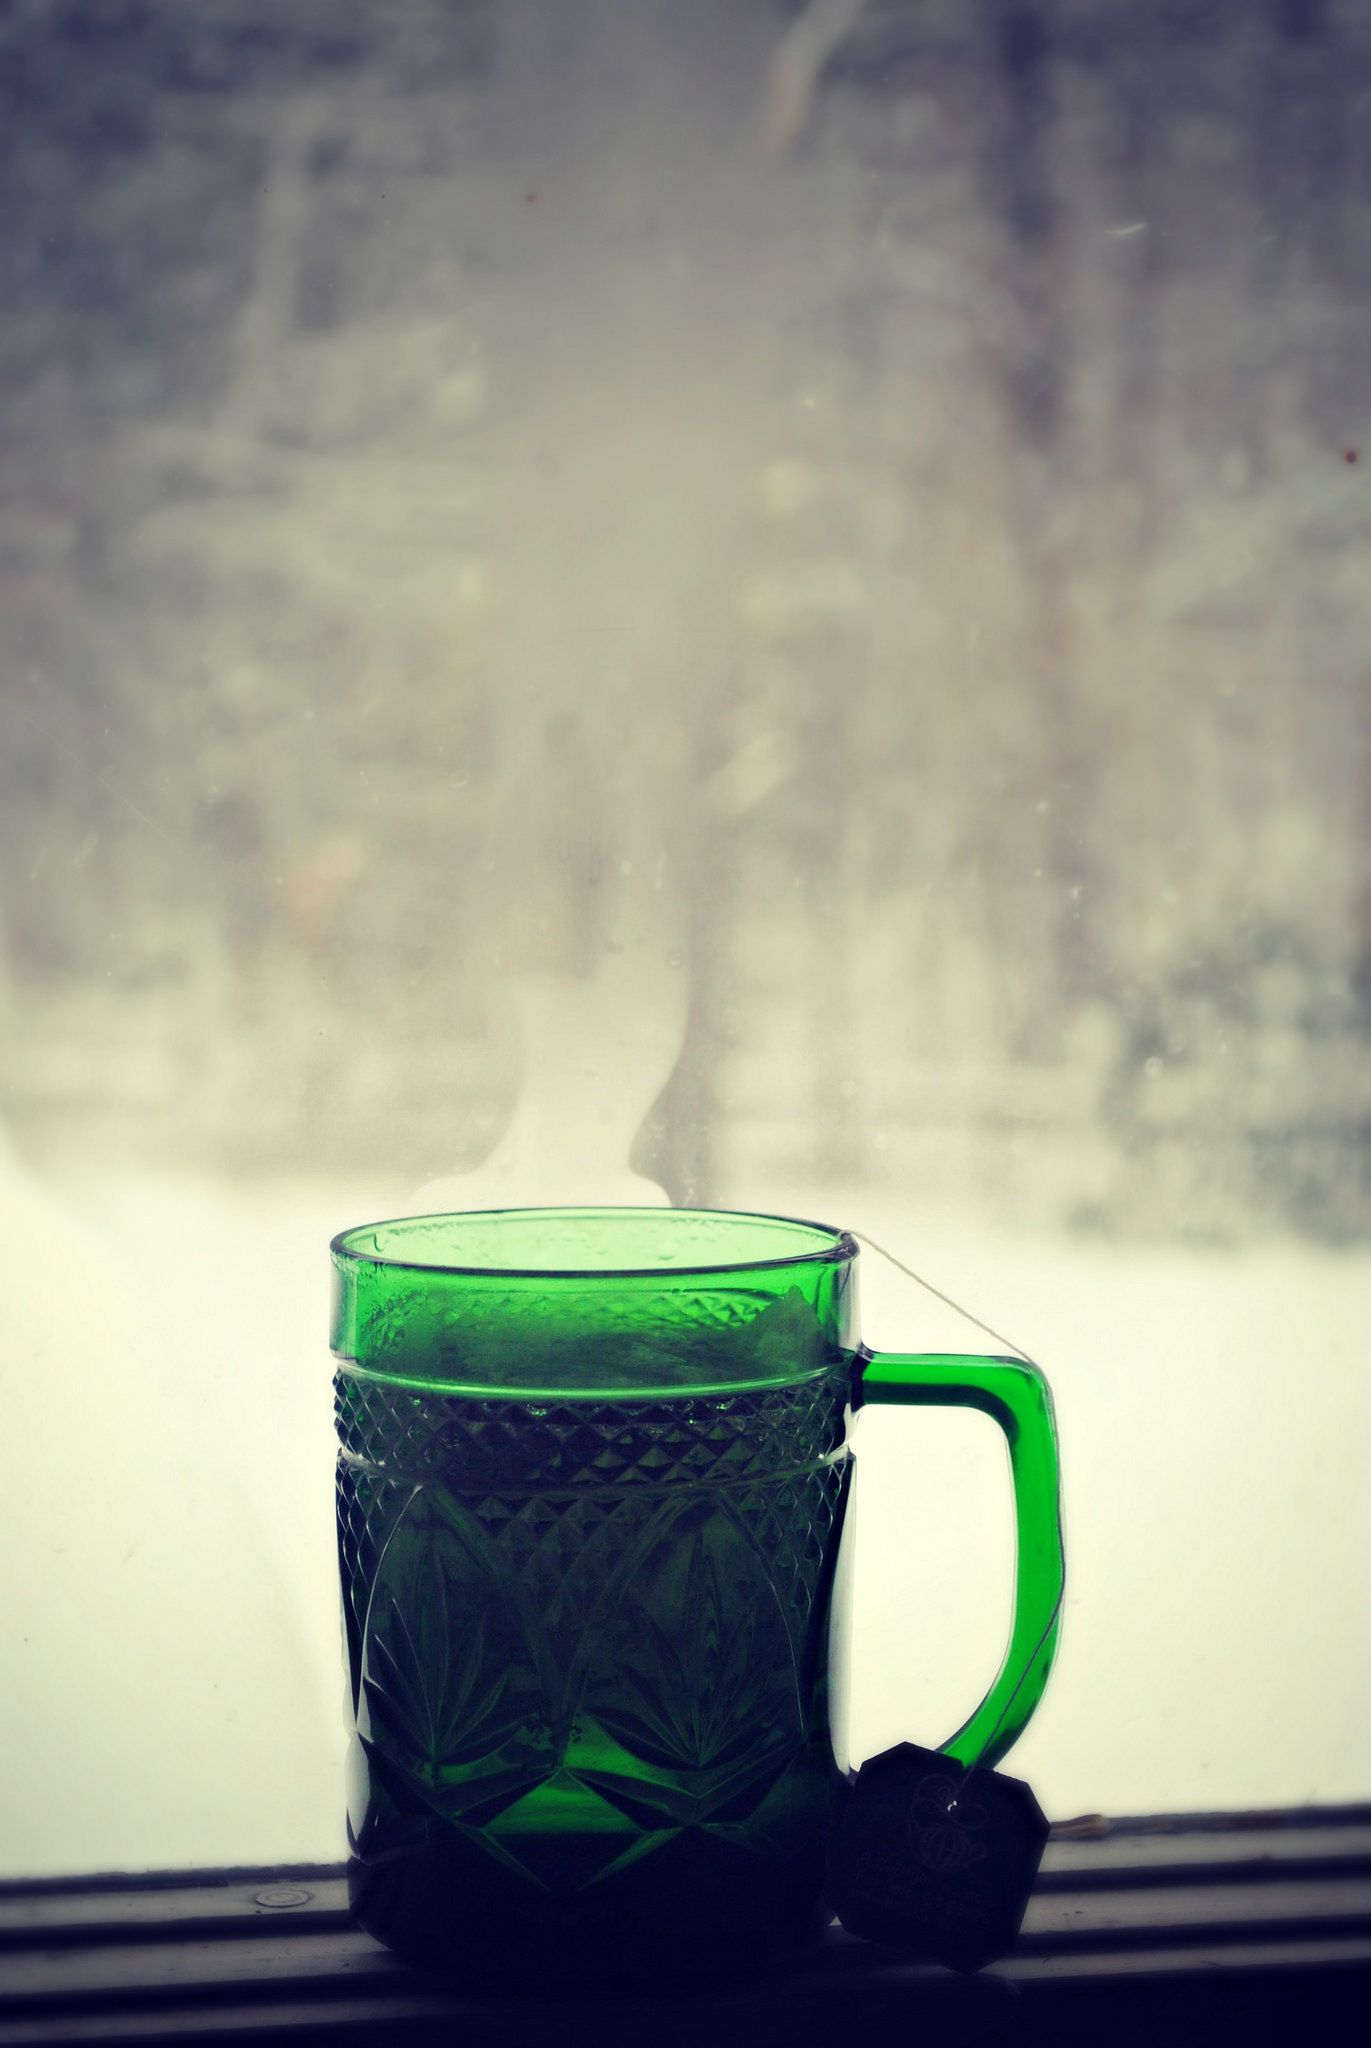 """https://flic.kr/p/kdWN9f   Warm Comfort on a Cold Day 2/18/14   49/365 """"There is no trouble so great or grave that cannot be much diminished by a nice cup of tea."""" -Bernard-Paul Heroux"""